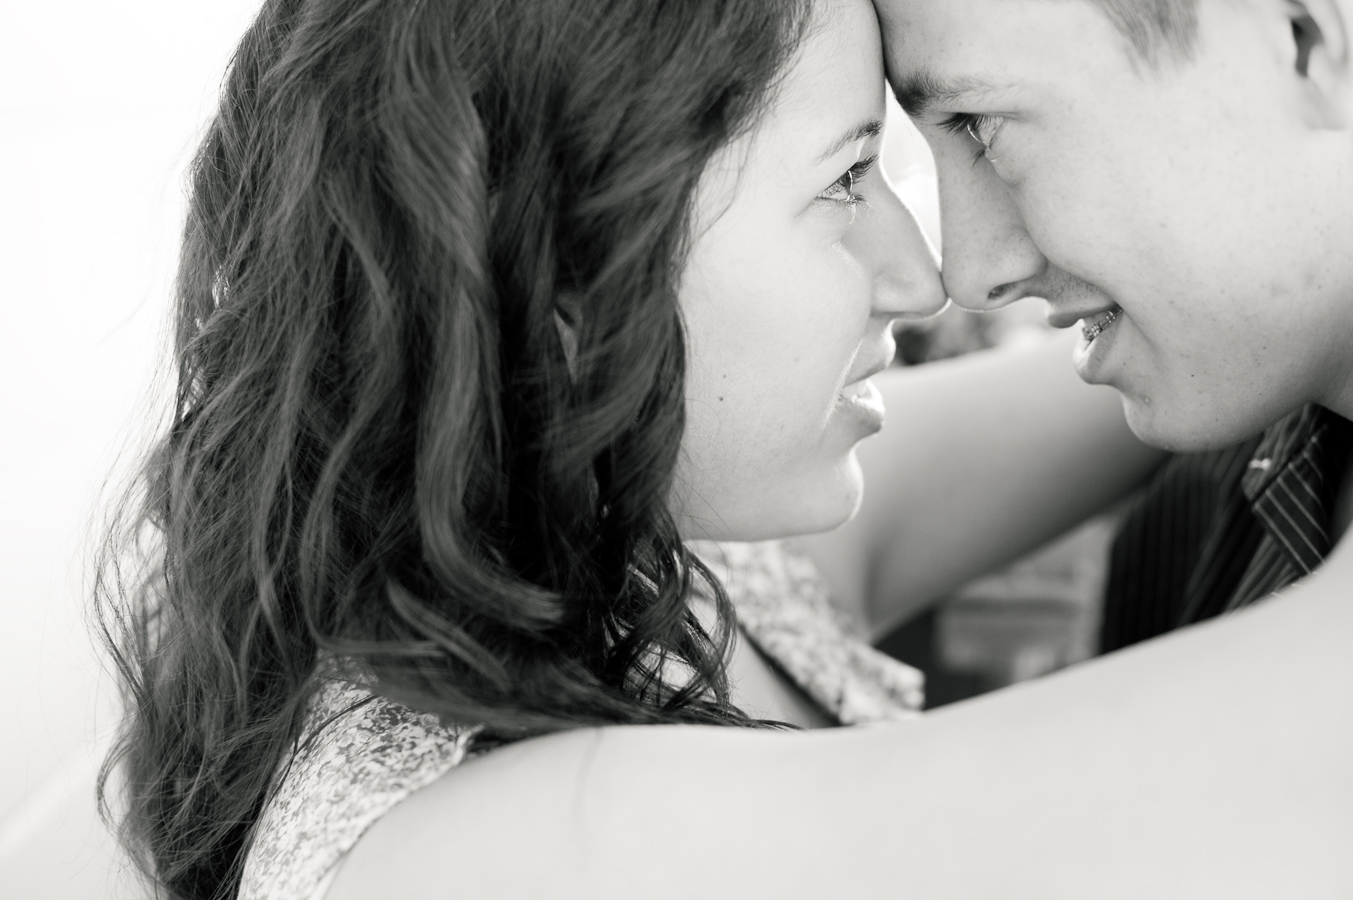 Image 2 of Andrea and Andres' Proposal Story